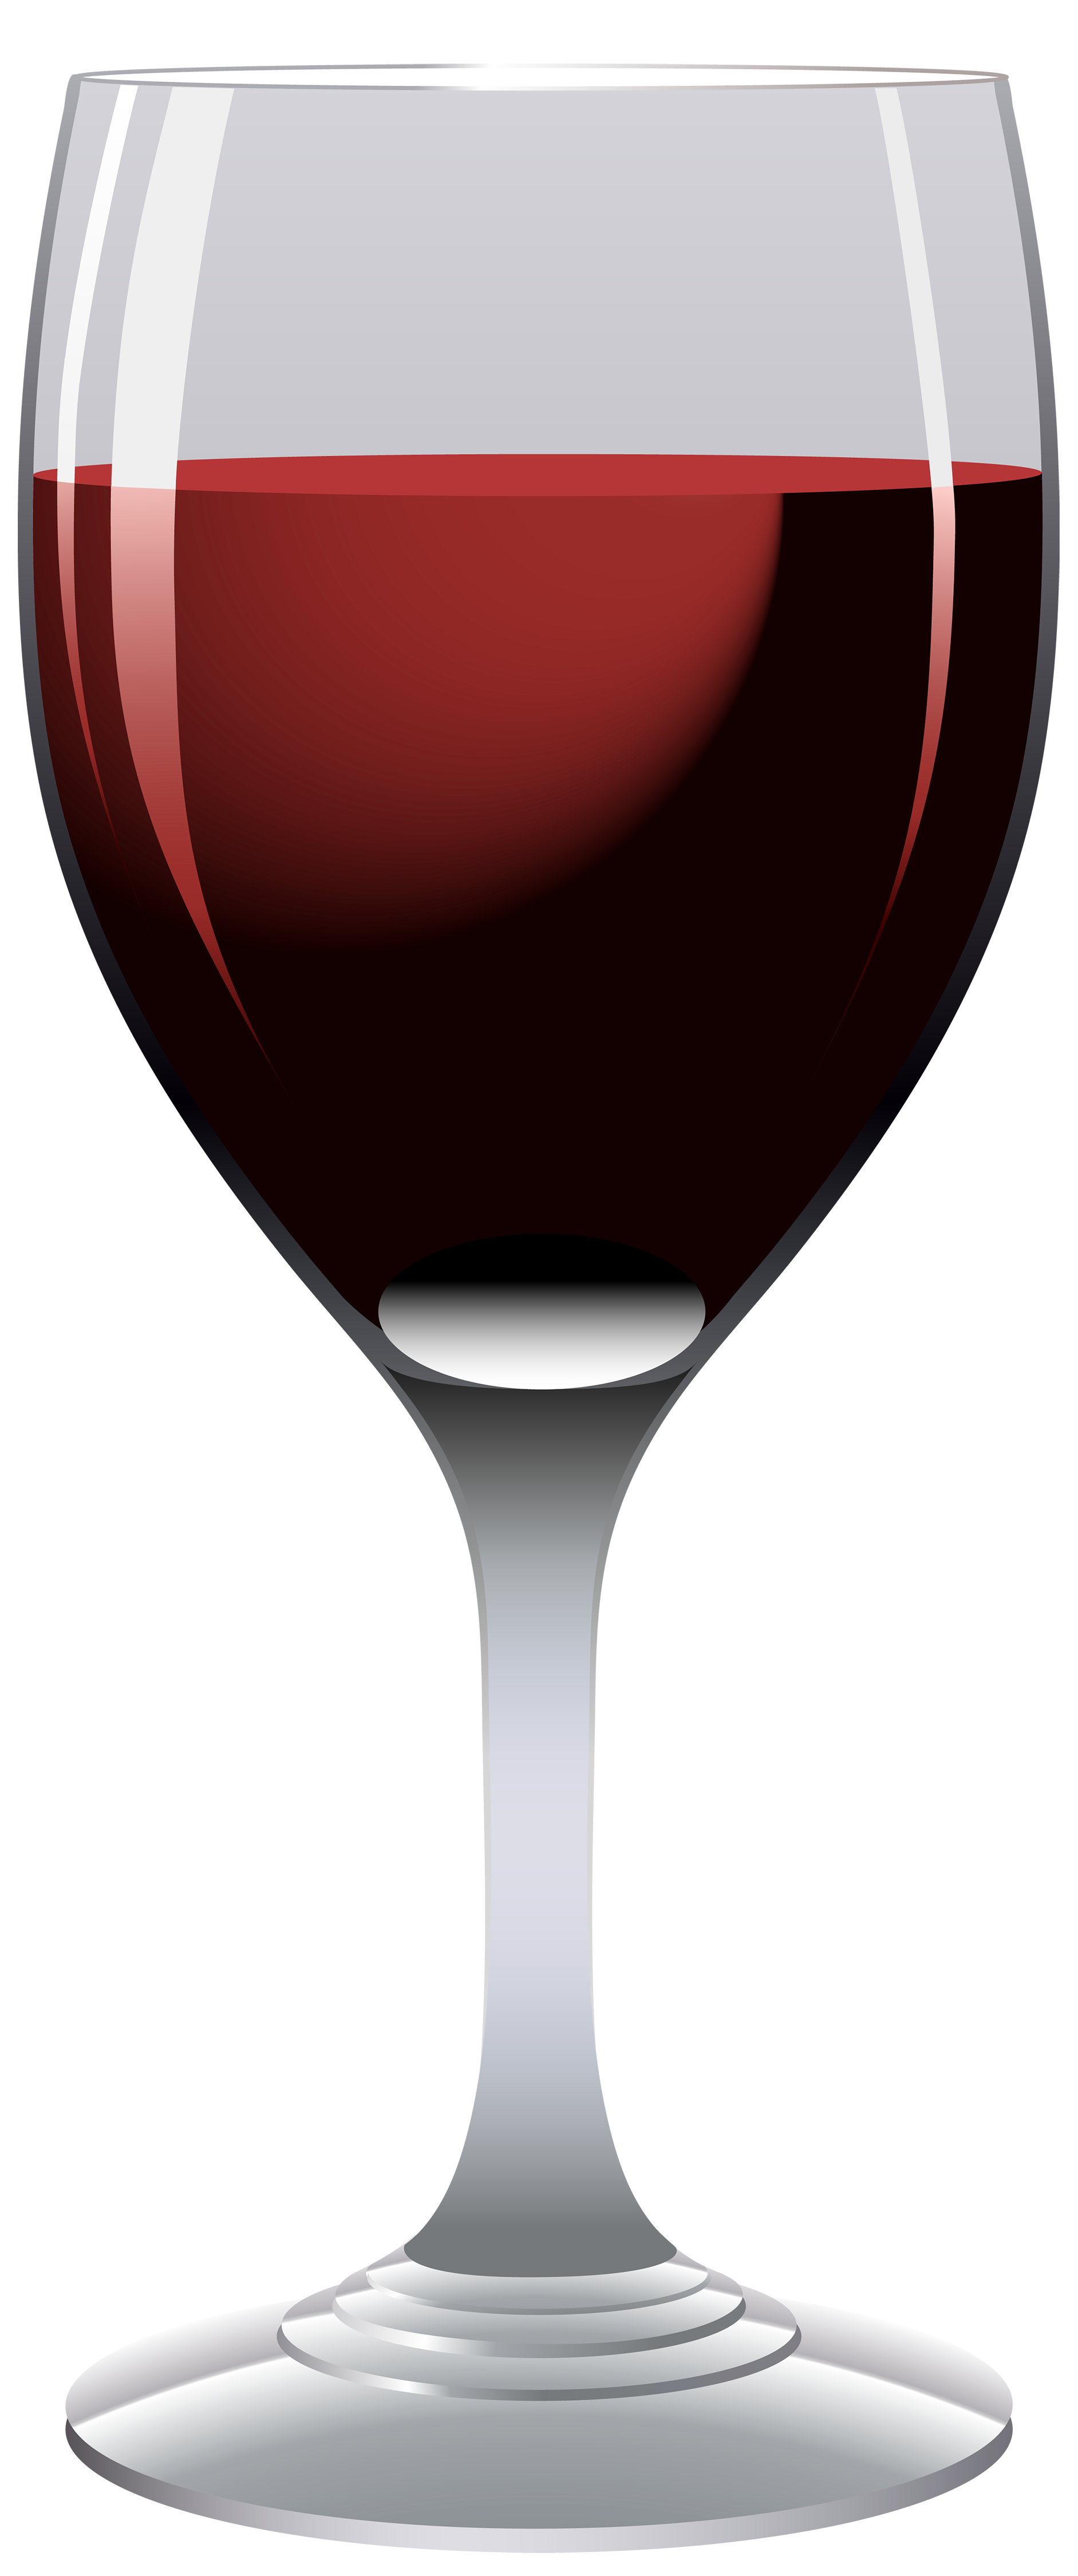 13++ Wine glass clipart free ideas in 2021